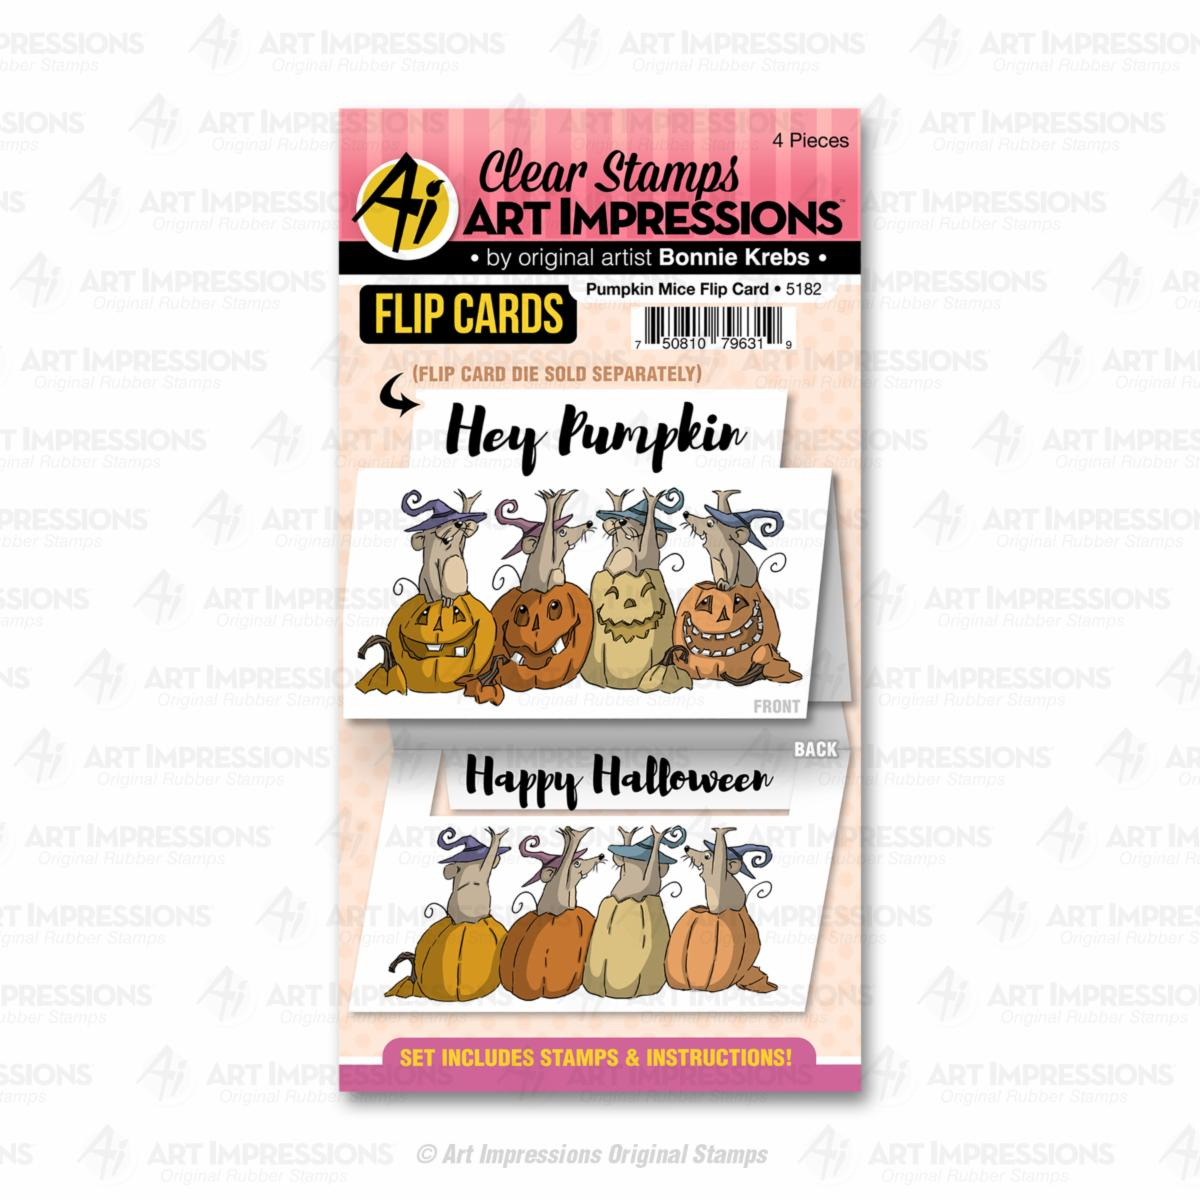 Pumpkin Mice Flip Card